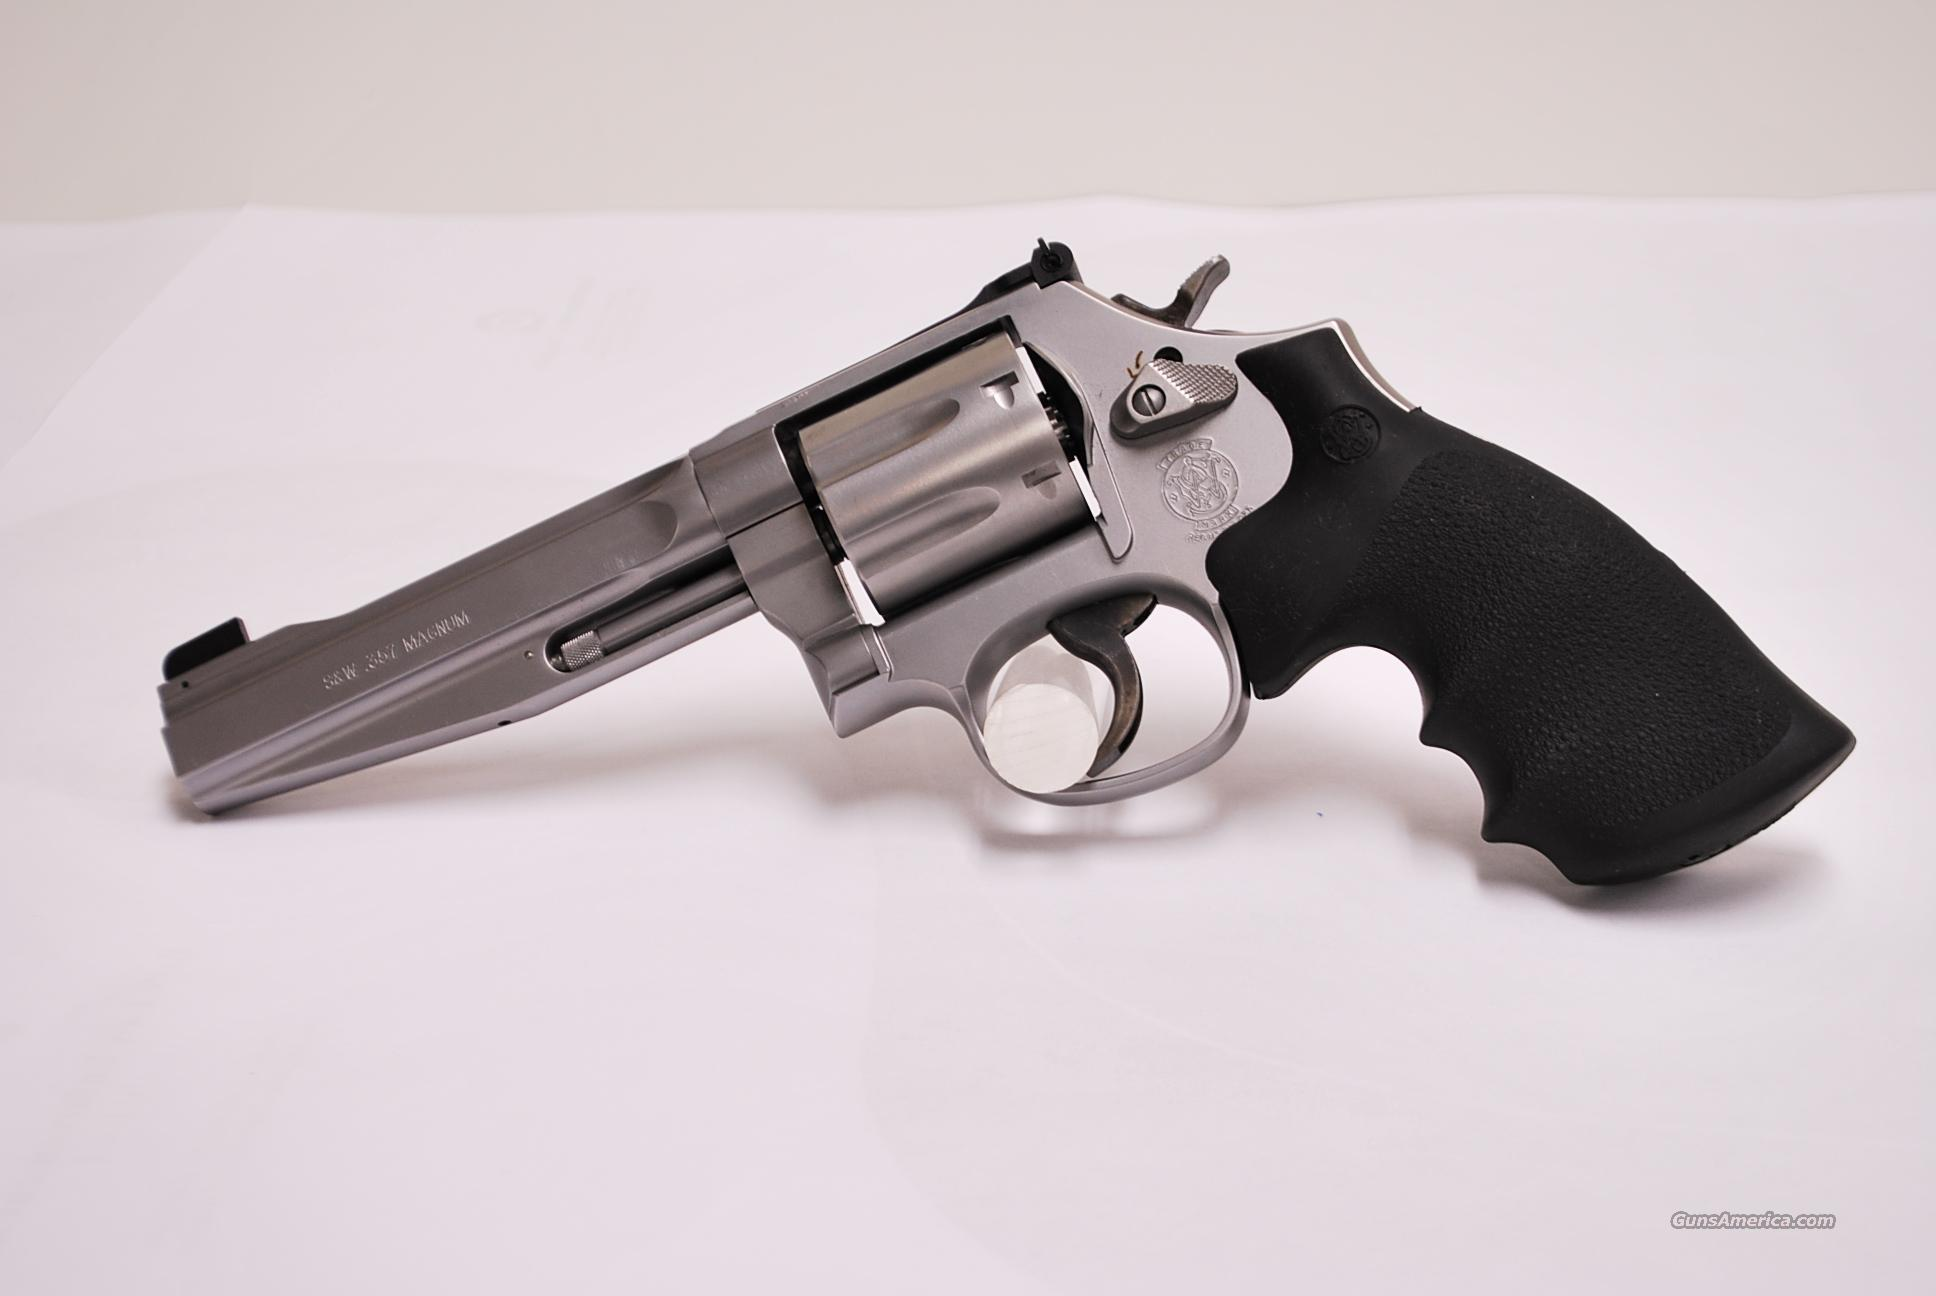 SMITH & WESSON 686 Plus Pro Series .357 Mag New S&W   Guns > Pistols > Smith & Wesson Revolvers > Full Frame Revolver